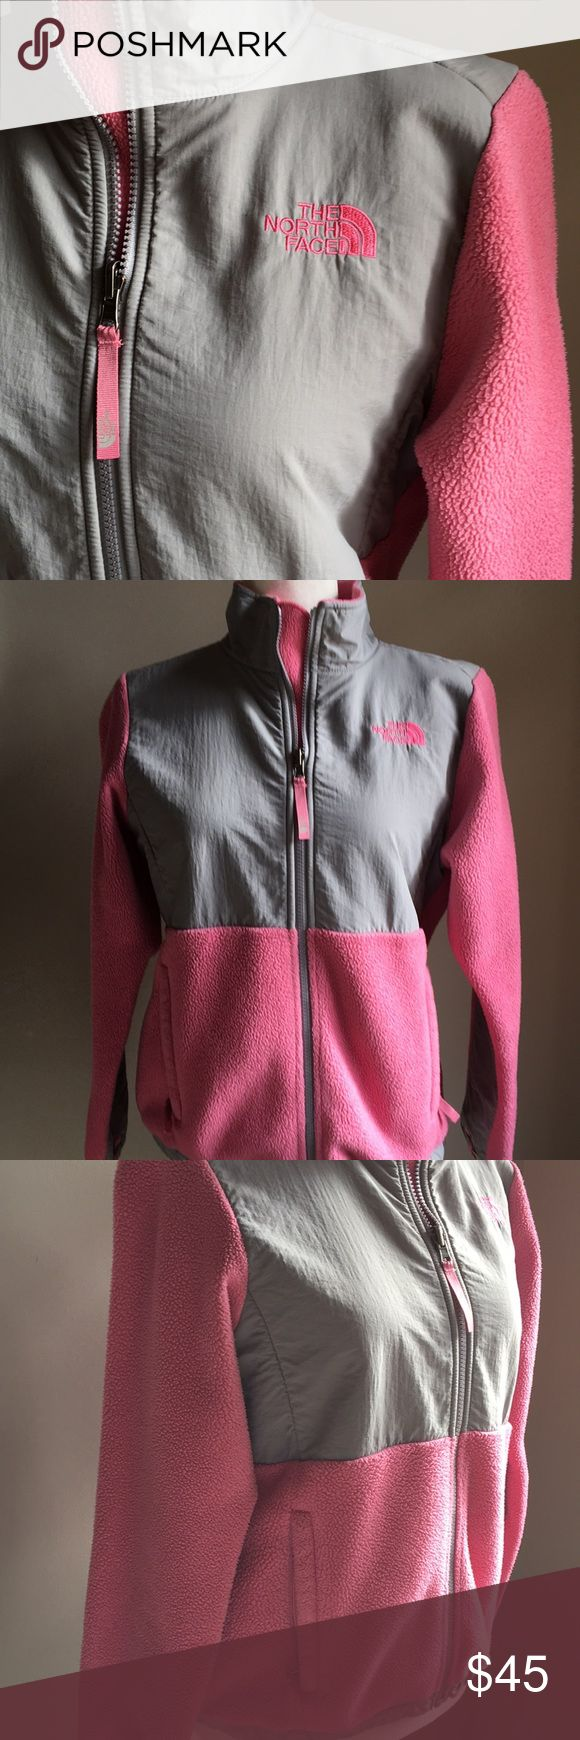 North Face Denali Coat In excellent preloved condition. Girls North Face Denali coat. Super cute and warm without flaws. Great pink & grey color that'll take her into the spring! Size large (14-16) Girl. The North Face Jackets & Coats